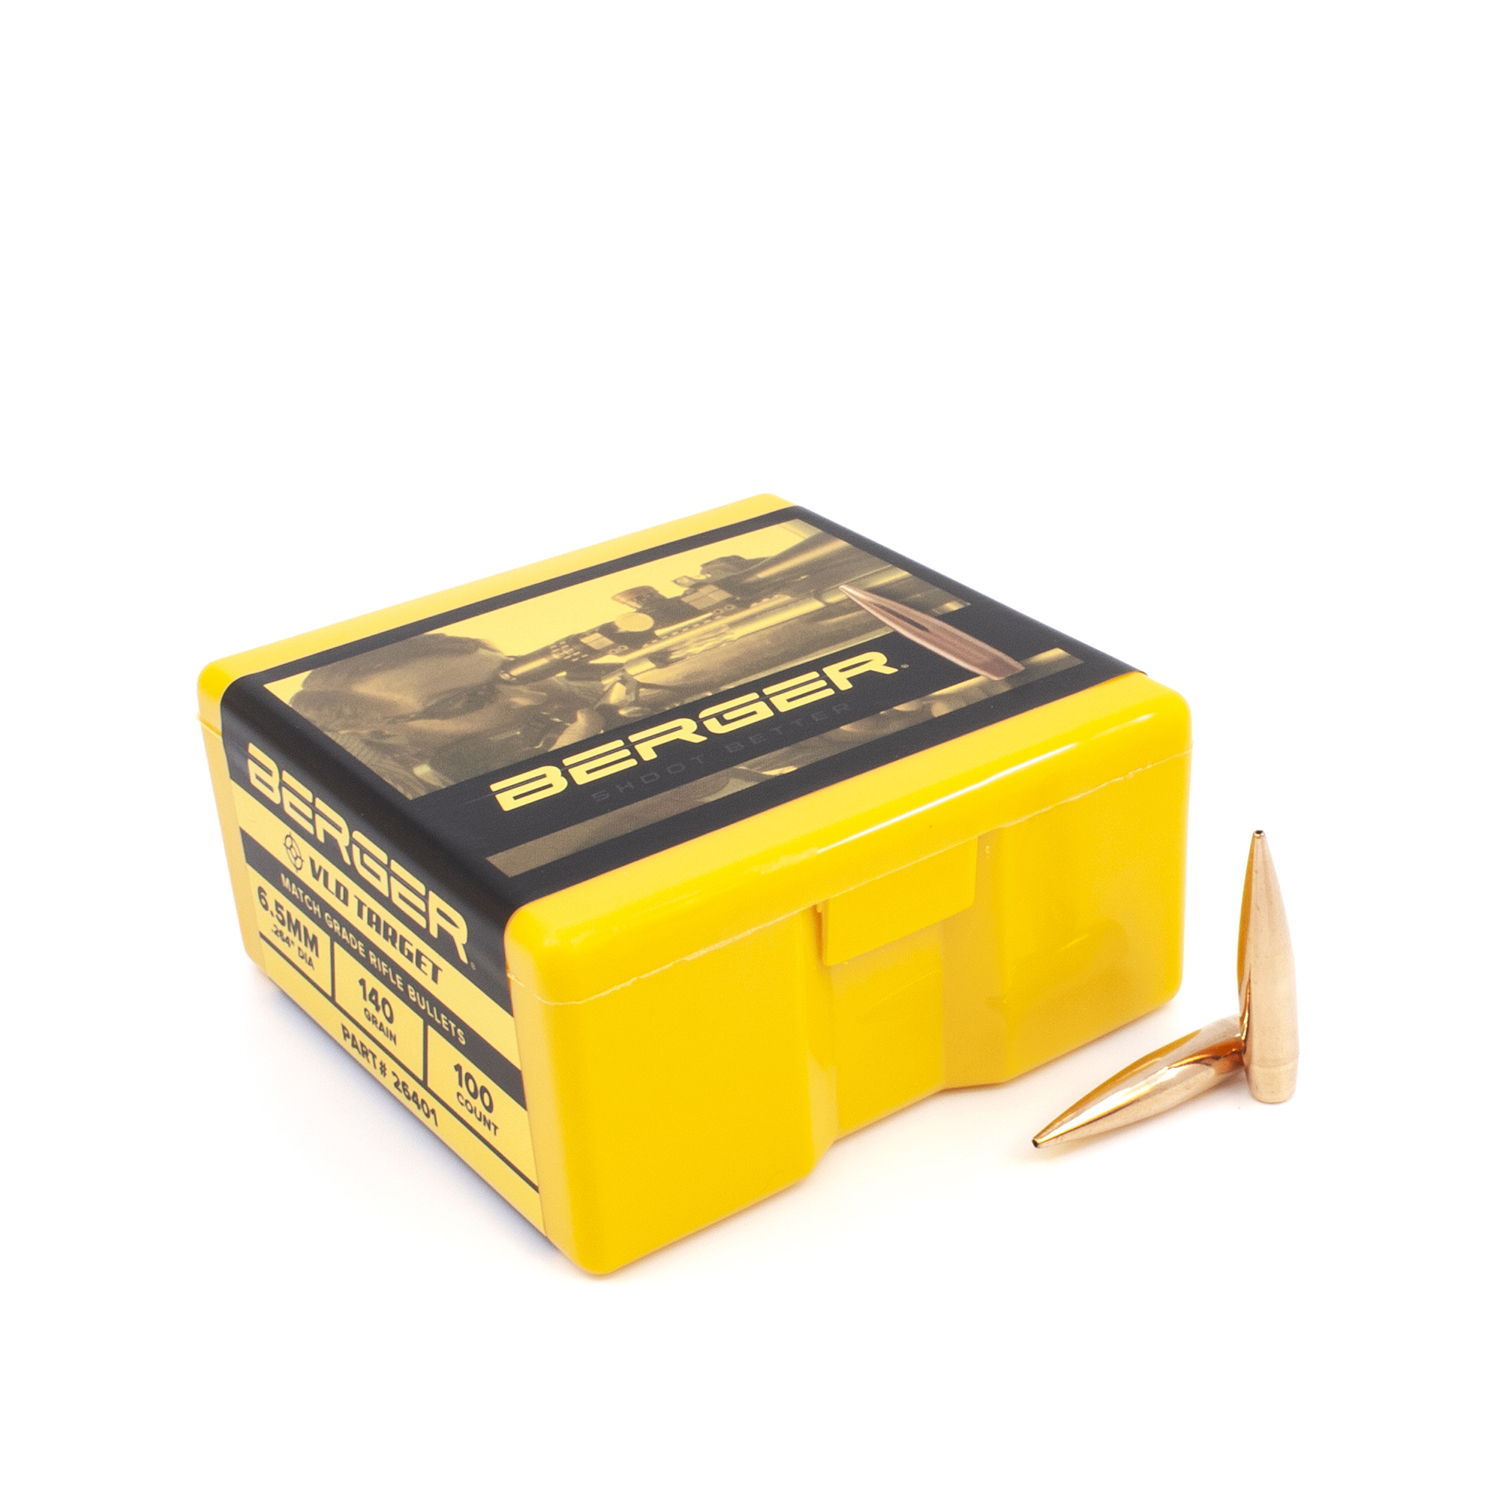 Berger Bullets - 6.5mm, 140 gr. VLD Target - Box of 100